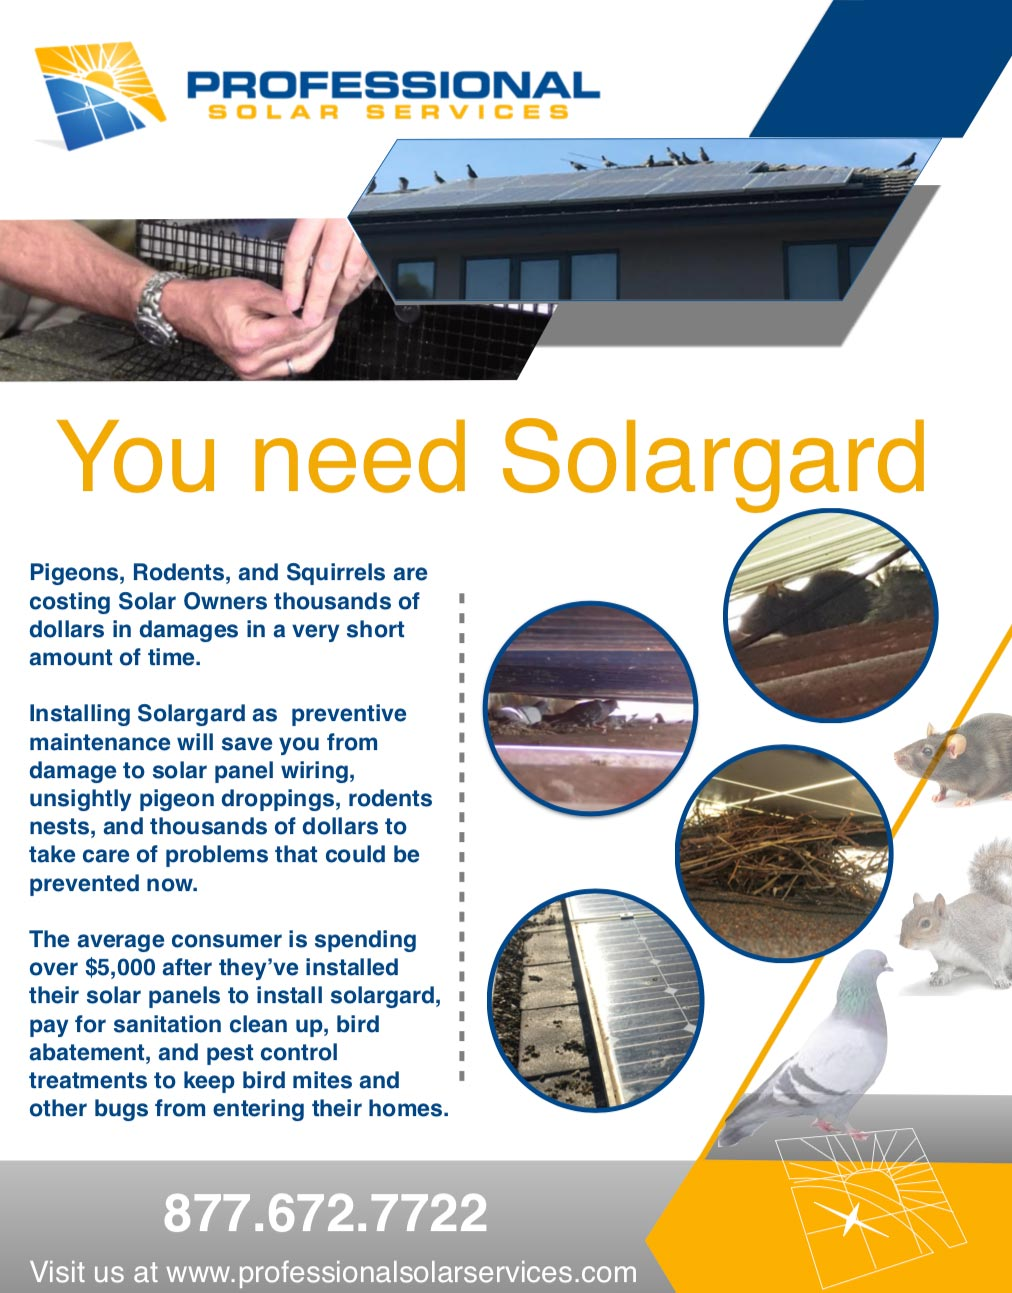 Professional Solar Services - Solargard